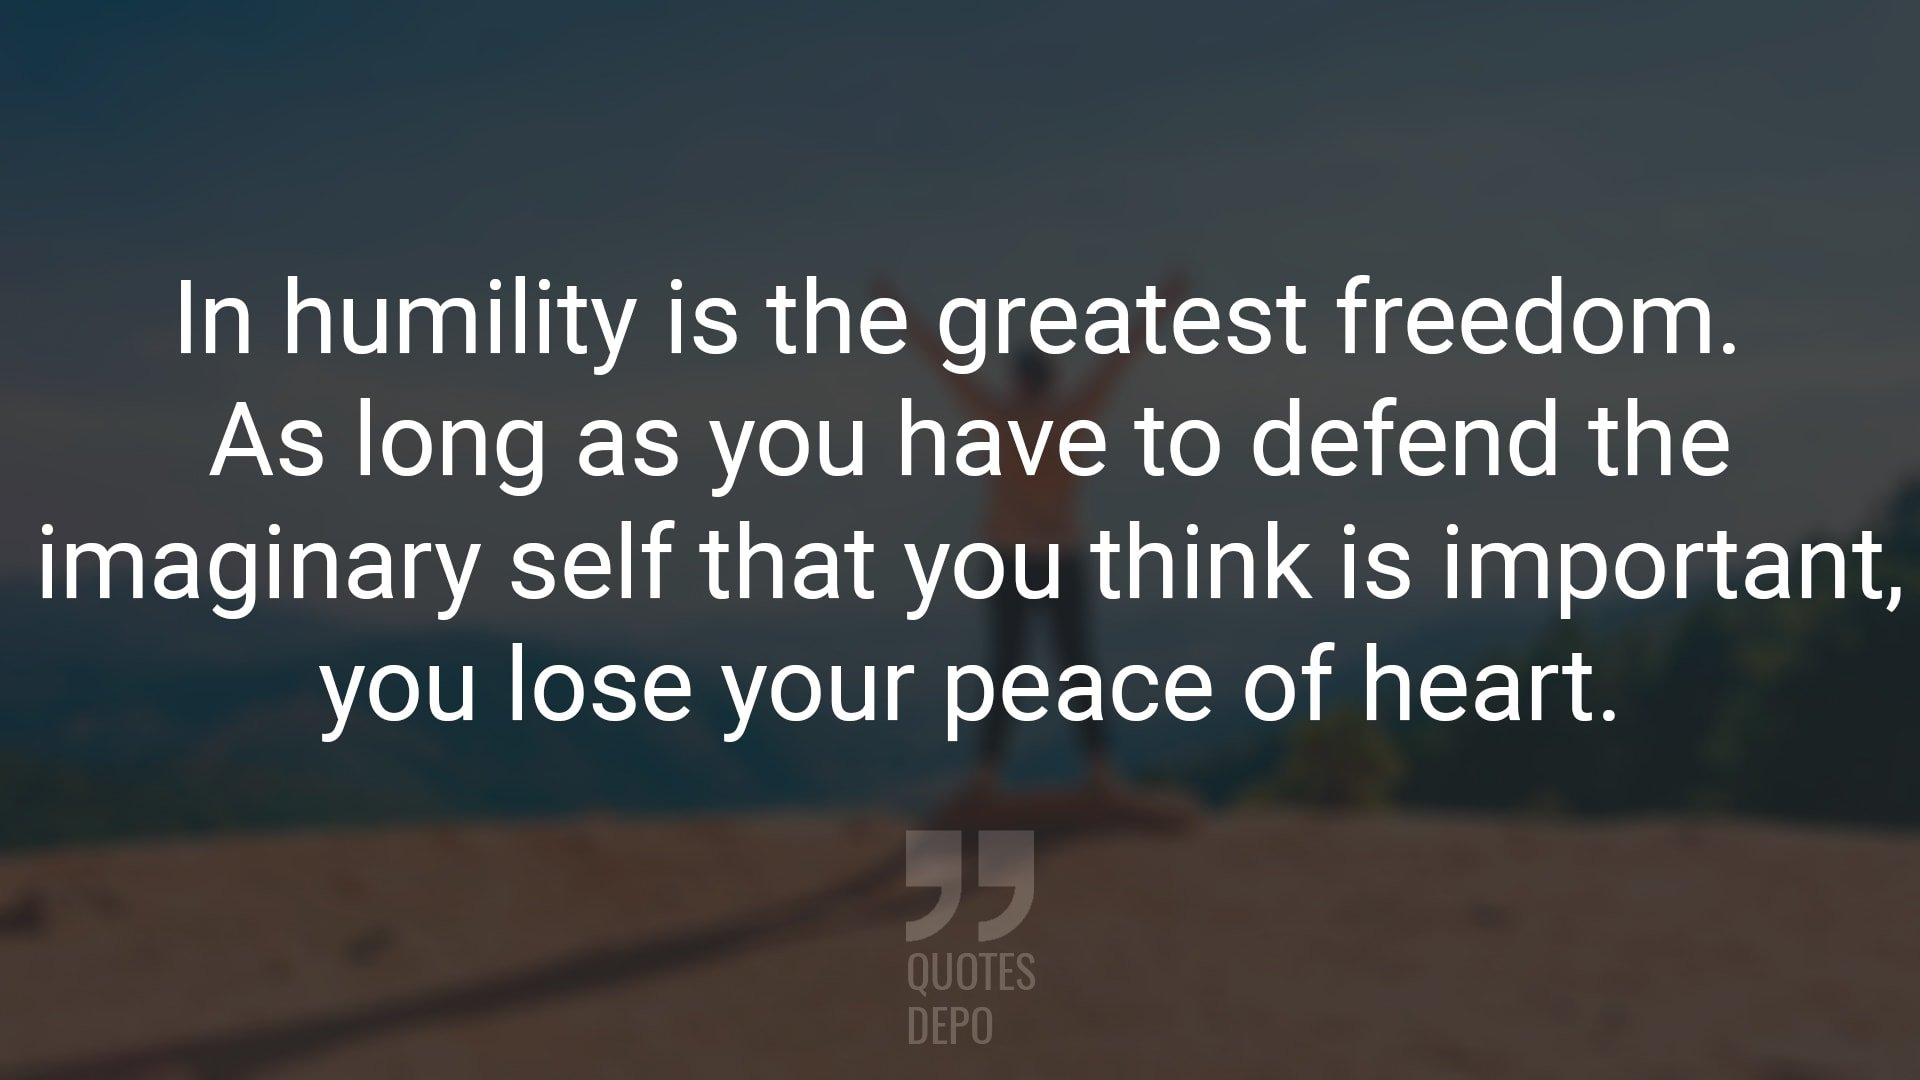 In Humility is the Greatest Freedom